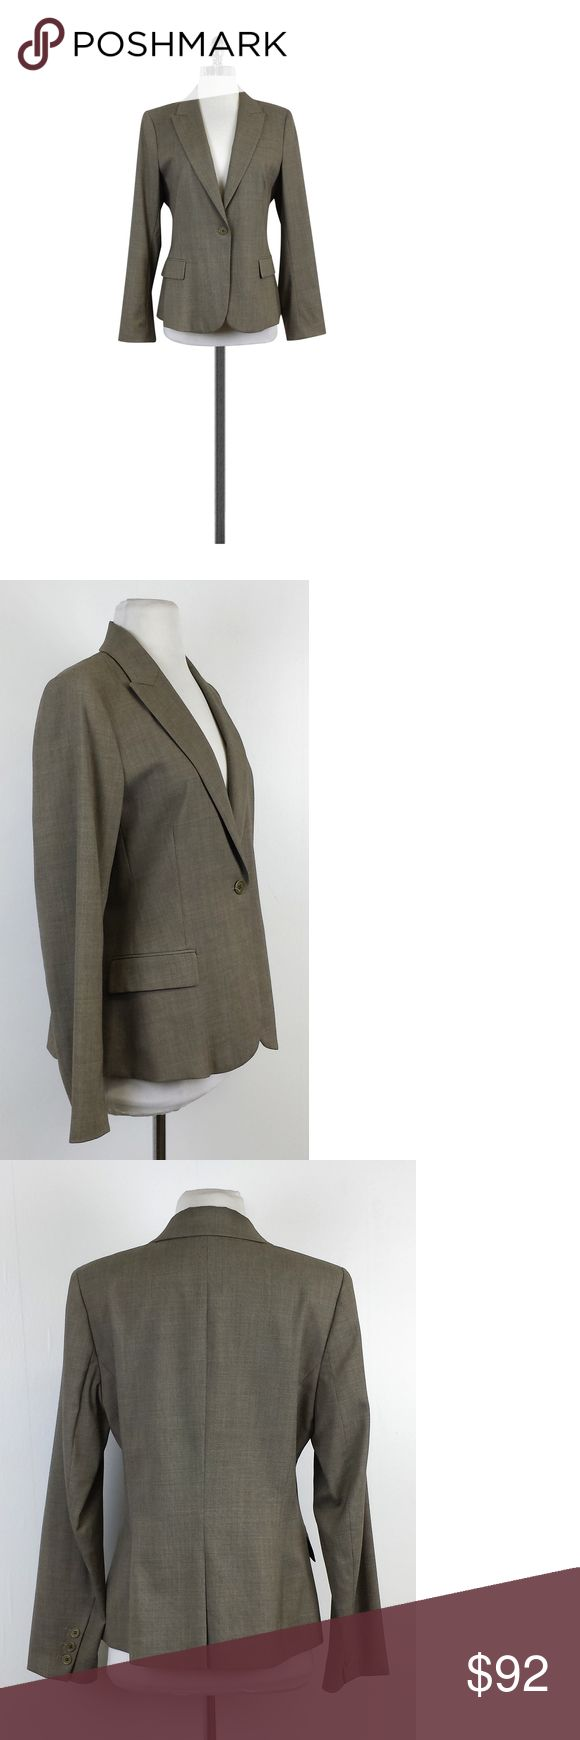 "Theory- Taupe Wool Blazer Sz 12 Add this classic one button taupe blazer to your wardrobe for a professional staple. Made of wool, this timeless blazer is sure to last. Size 12 Body 98% wool 2% polyurethane Lining 100% polyester Sleeve lining 50% polyester 50% viscose Button on front 2 waist pockets w/flaps 1 chest pocket Buttons on sleeves Vent in back Long sleeves Lightly padded shoulders Shoulder to hem 24.5"" Shoulder to shoulder 16"" Simple yet so classic, Theory pieces are some of the…"